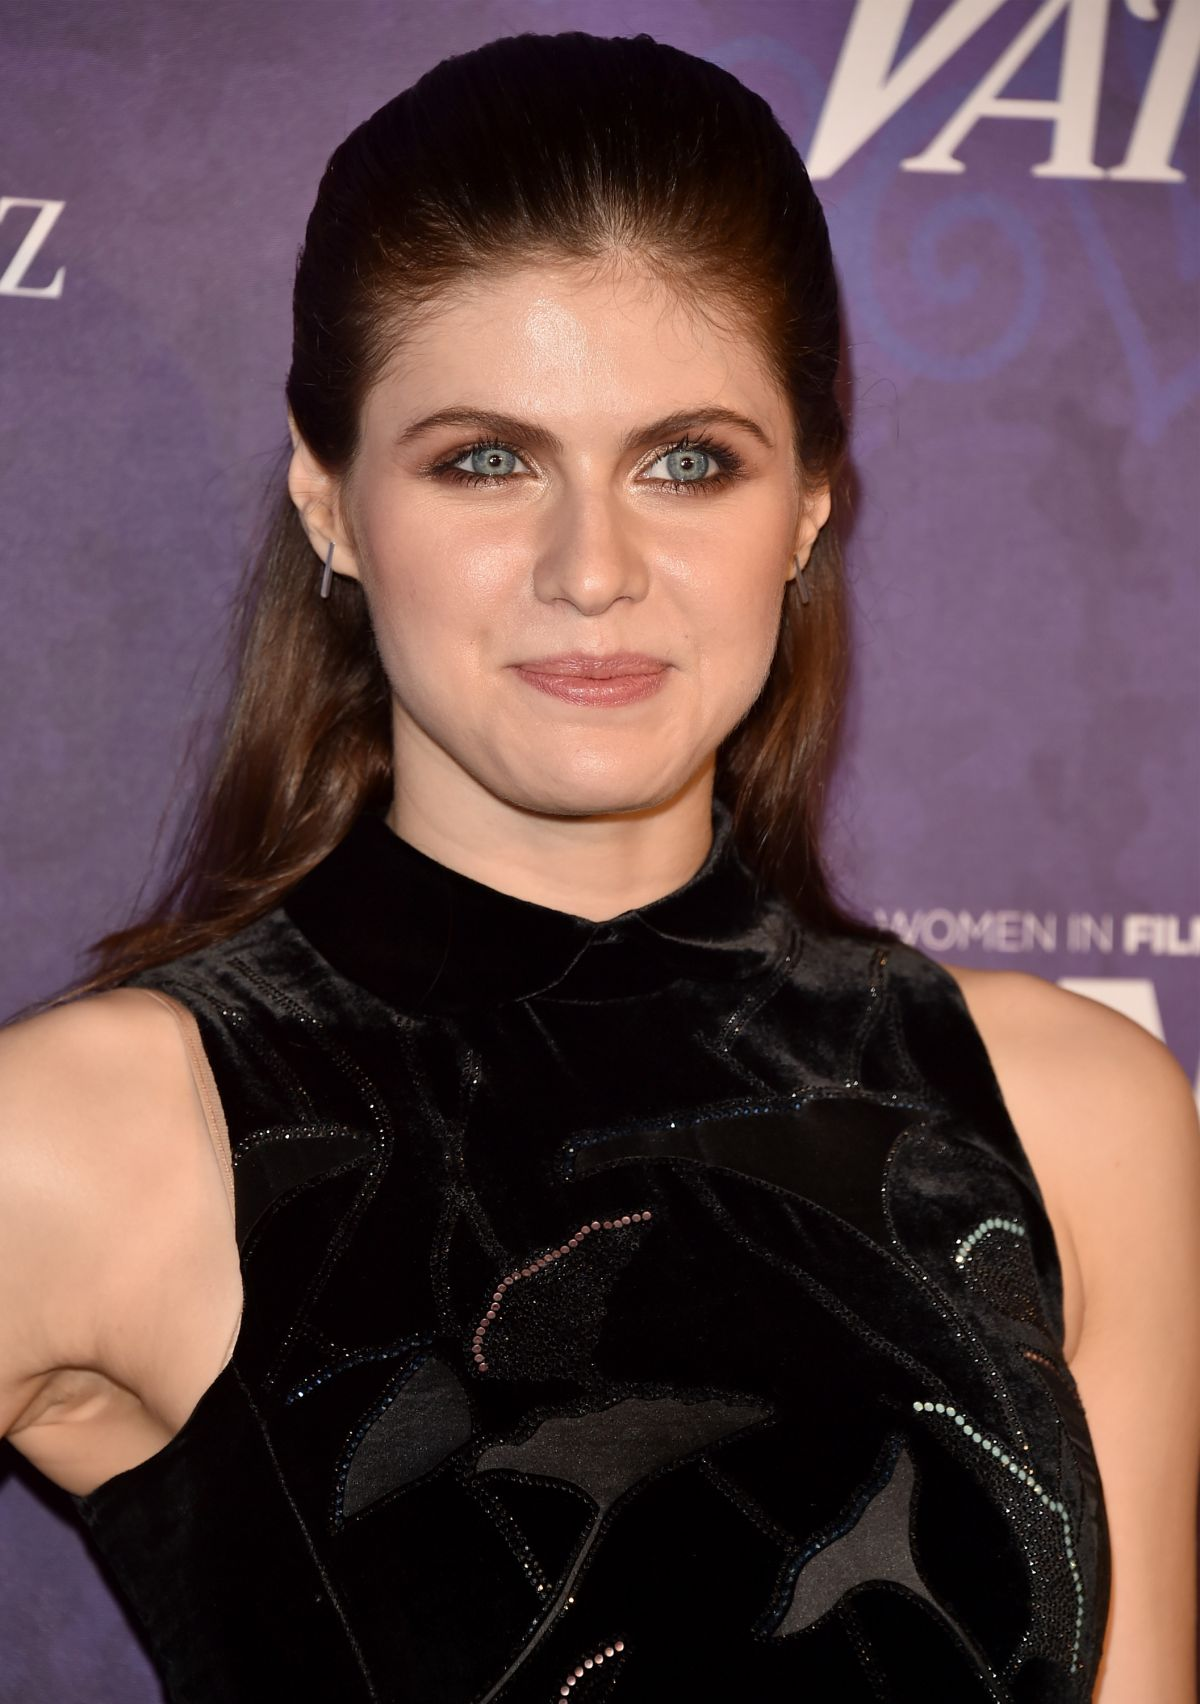 ALEXANDRA DADDARIO at Variety and Women in Film Emmy Nominee Celebration